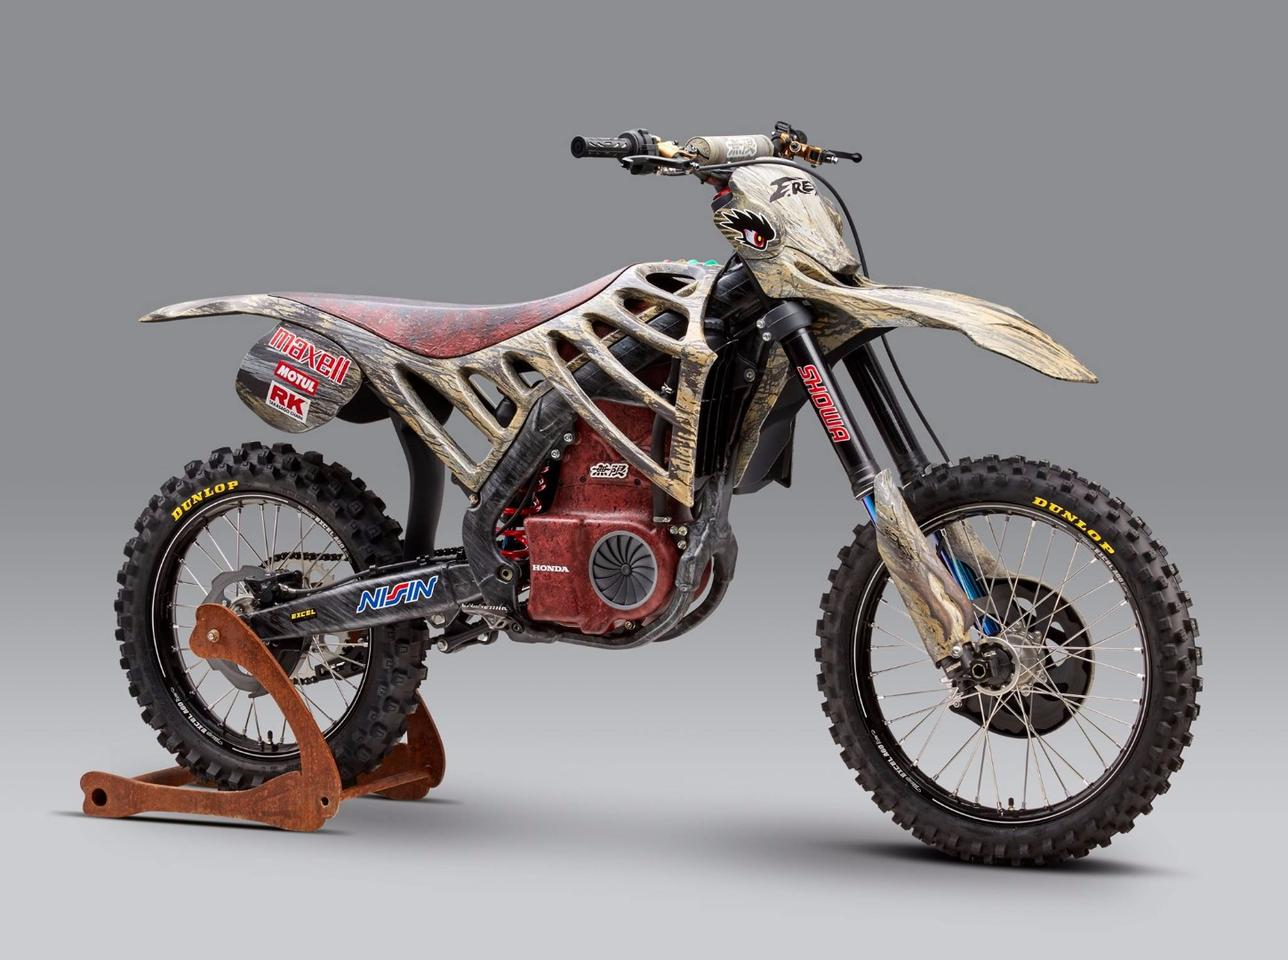 The E.Rex is a concept motocross racer by Mugen and Honda